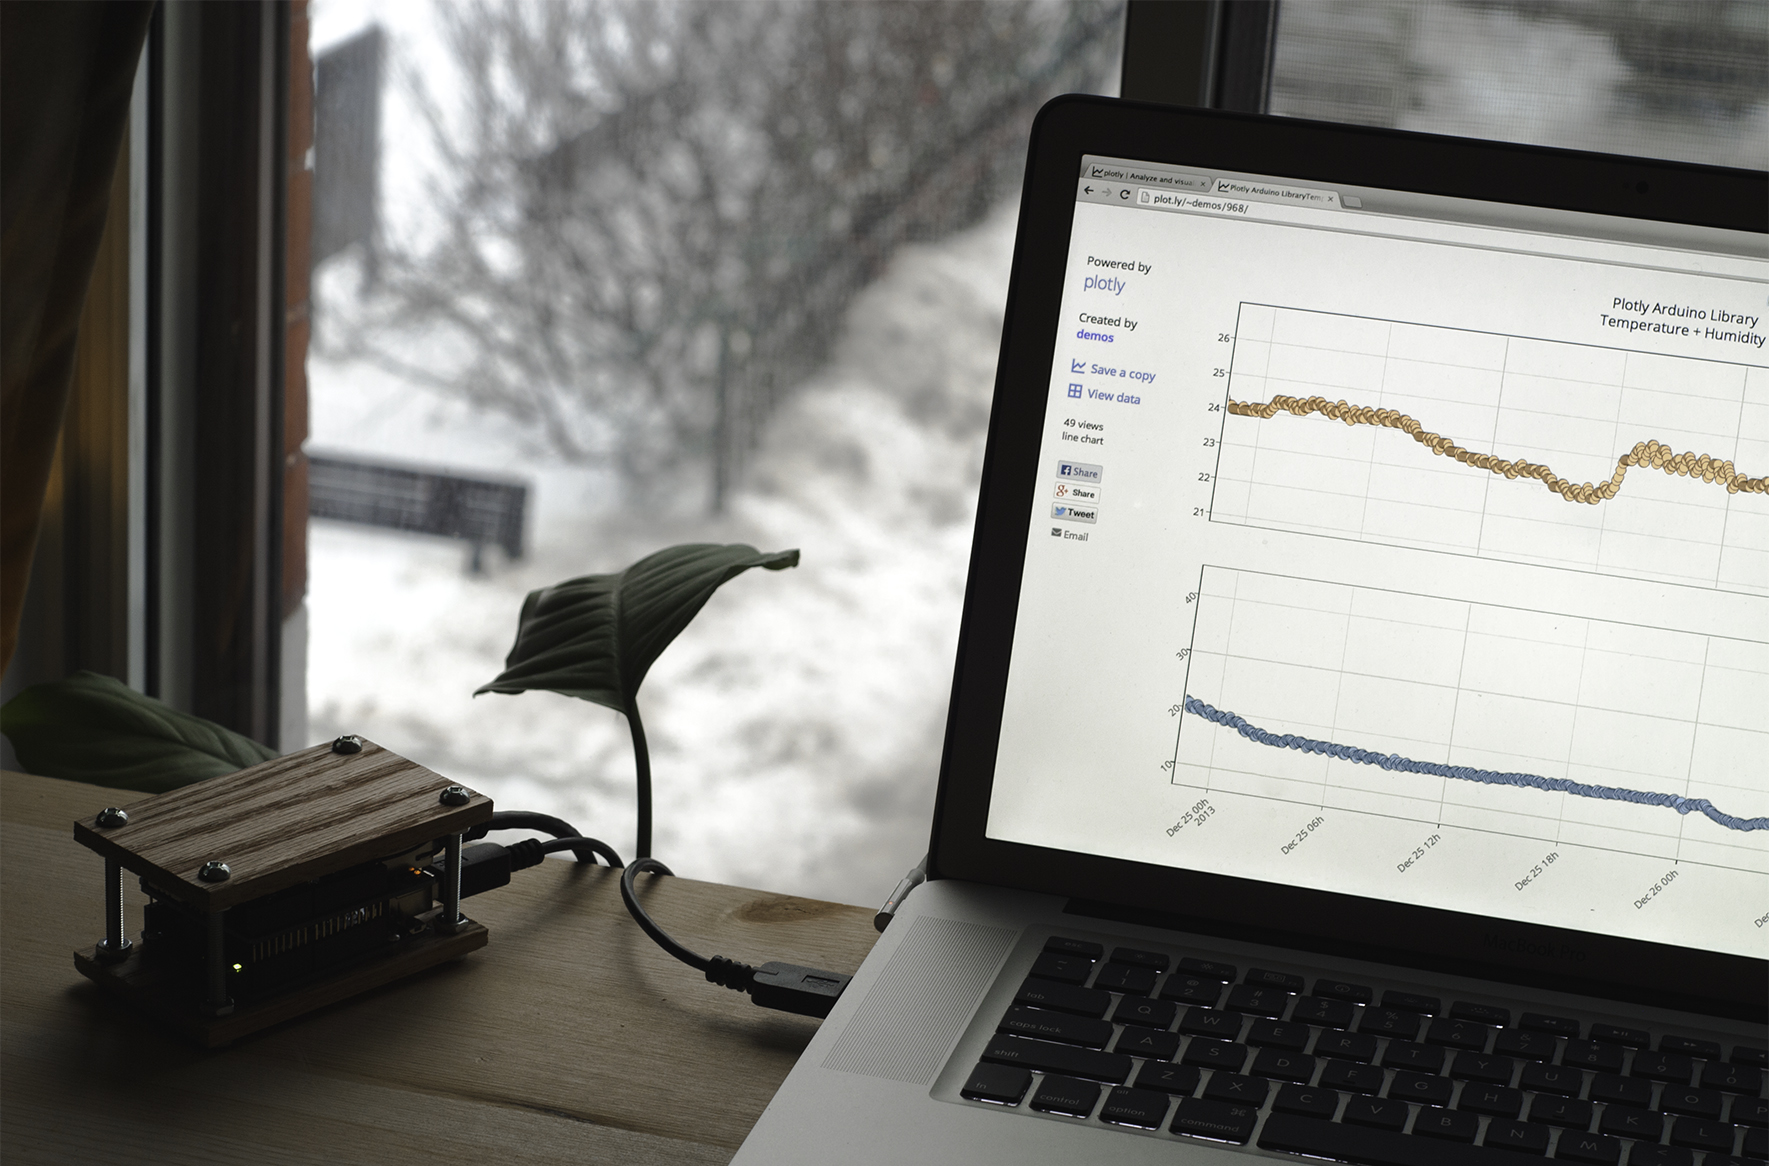 An Arduino streaming data to a Plotly graph.